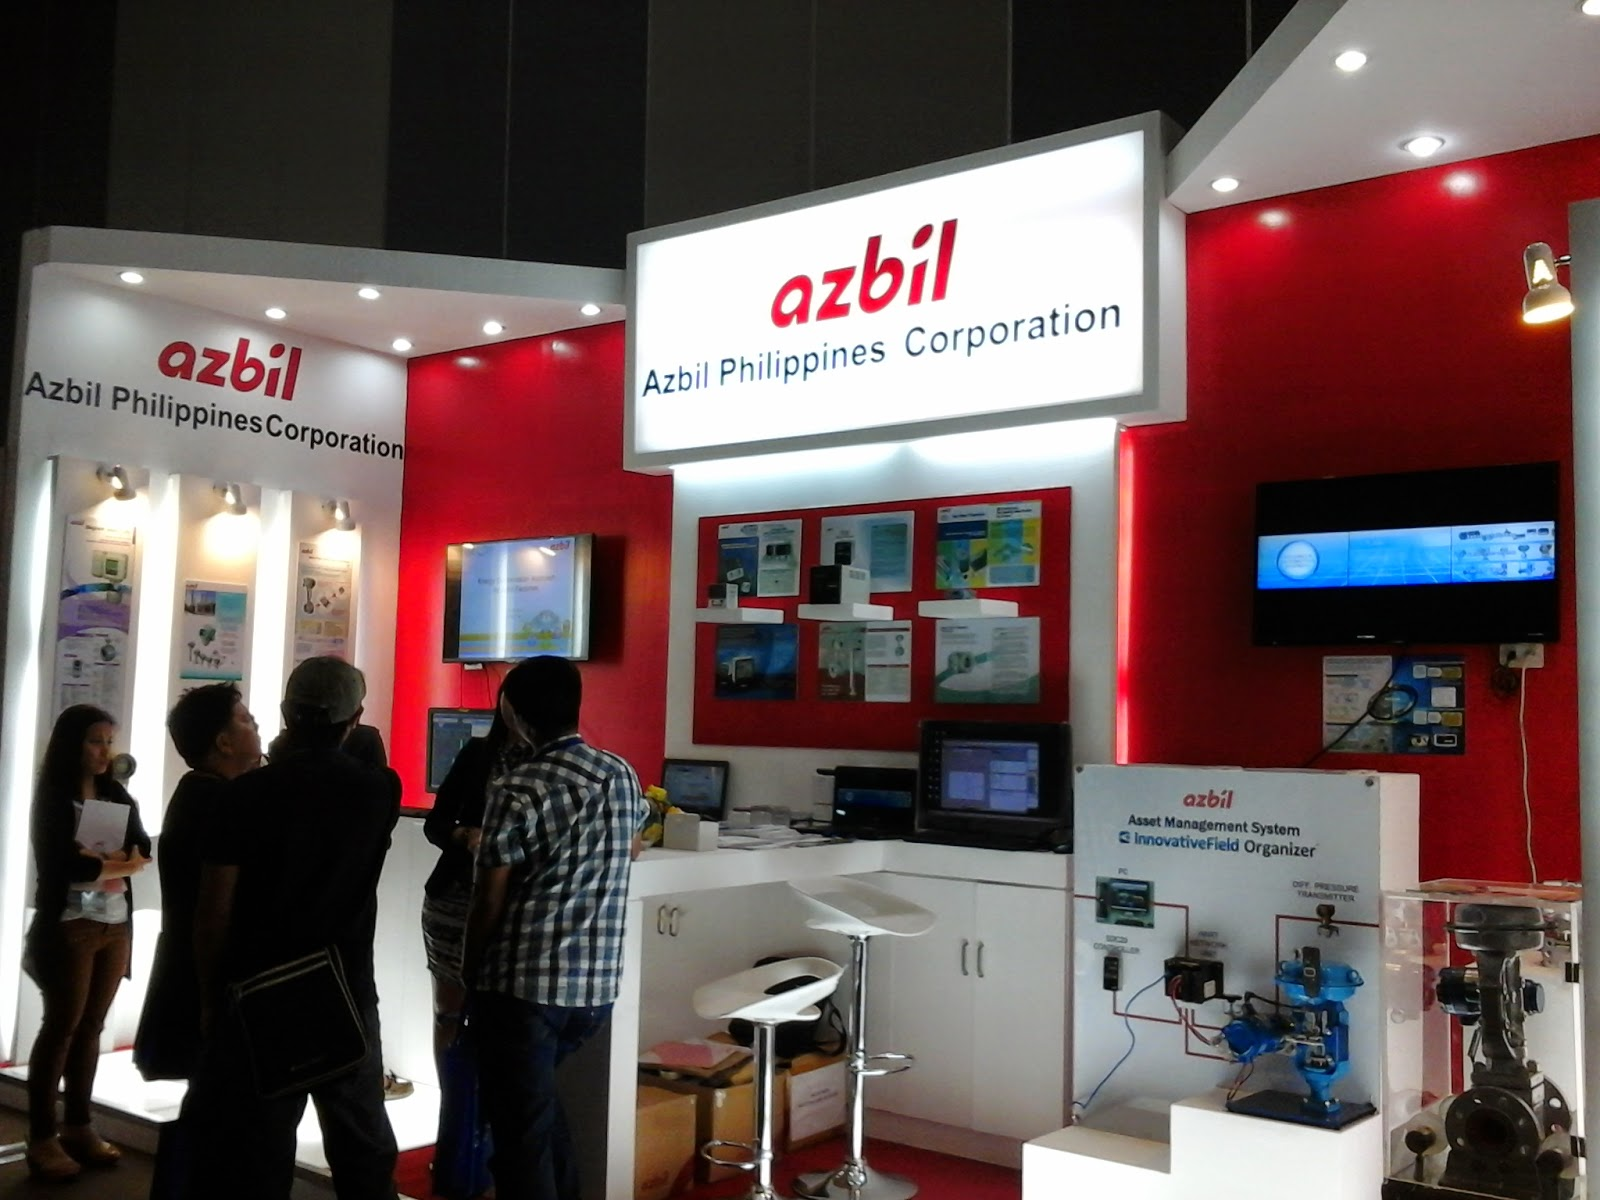 Azbil Philippines Corporation Exhibit Display